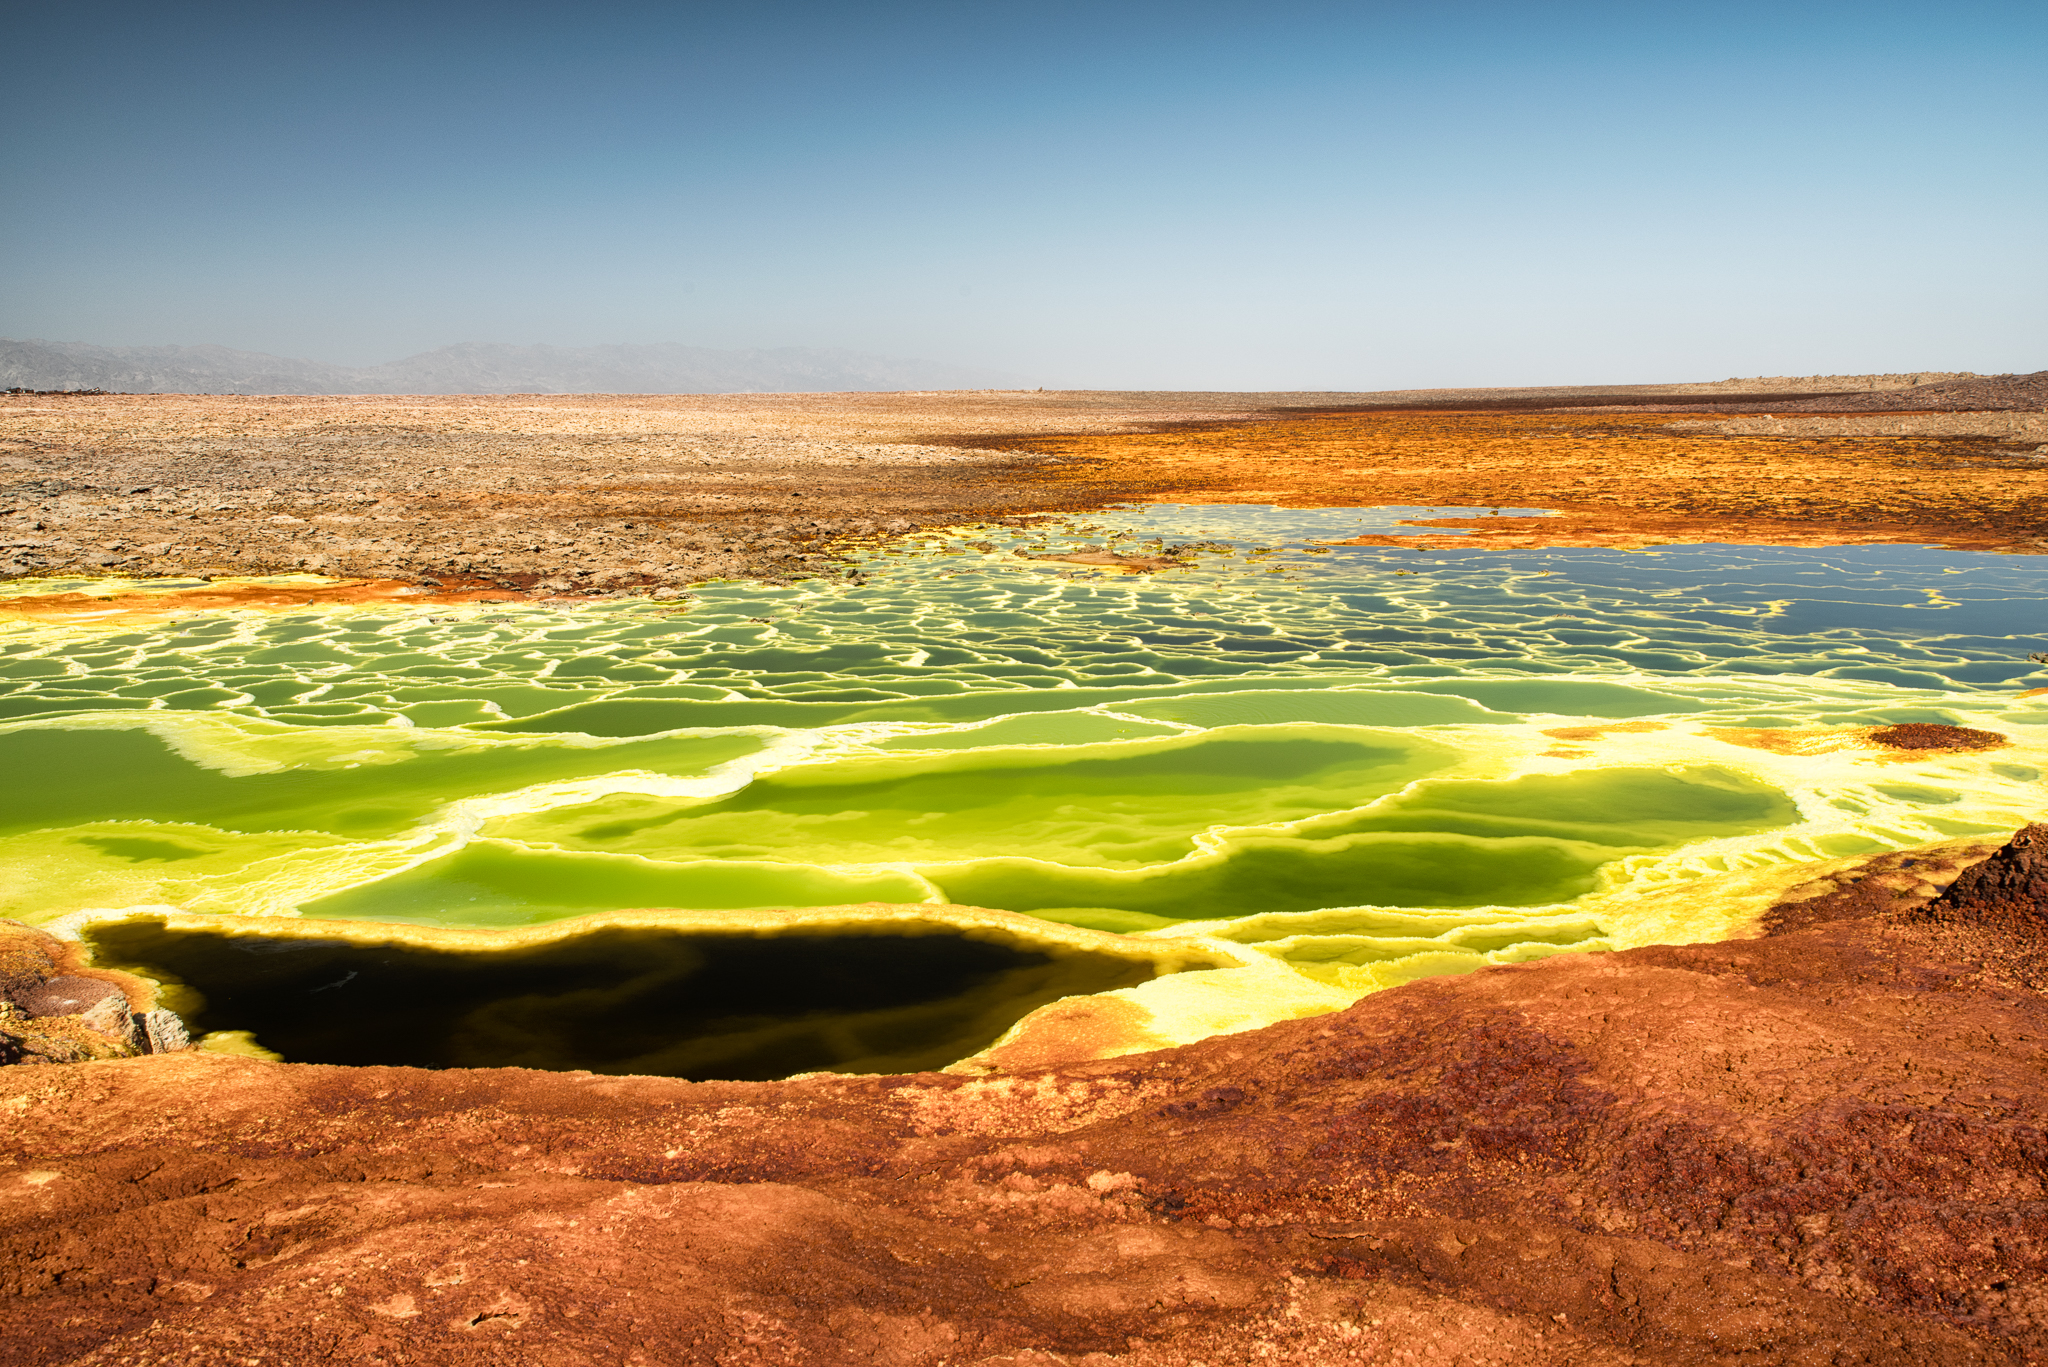 Danakil Depression. Photo Credit: Andrea Moroni. Used under  Creative Commons license